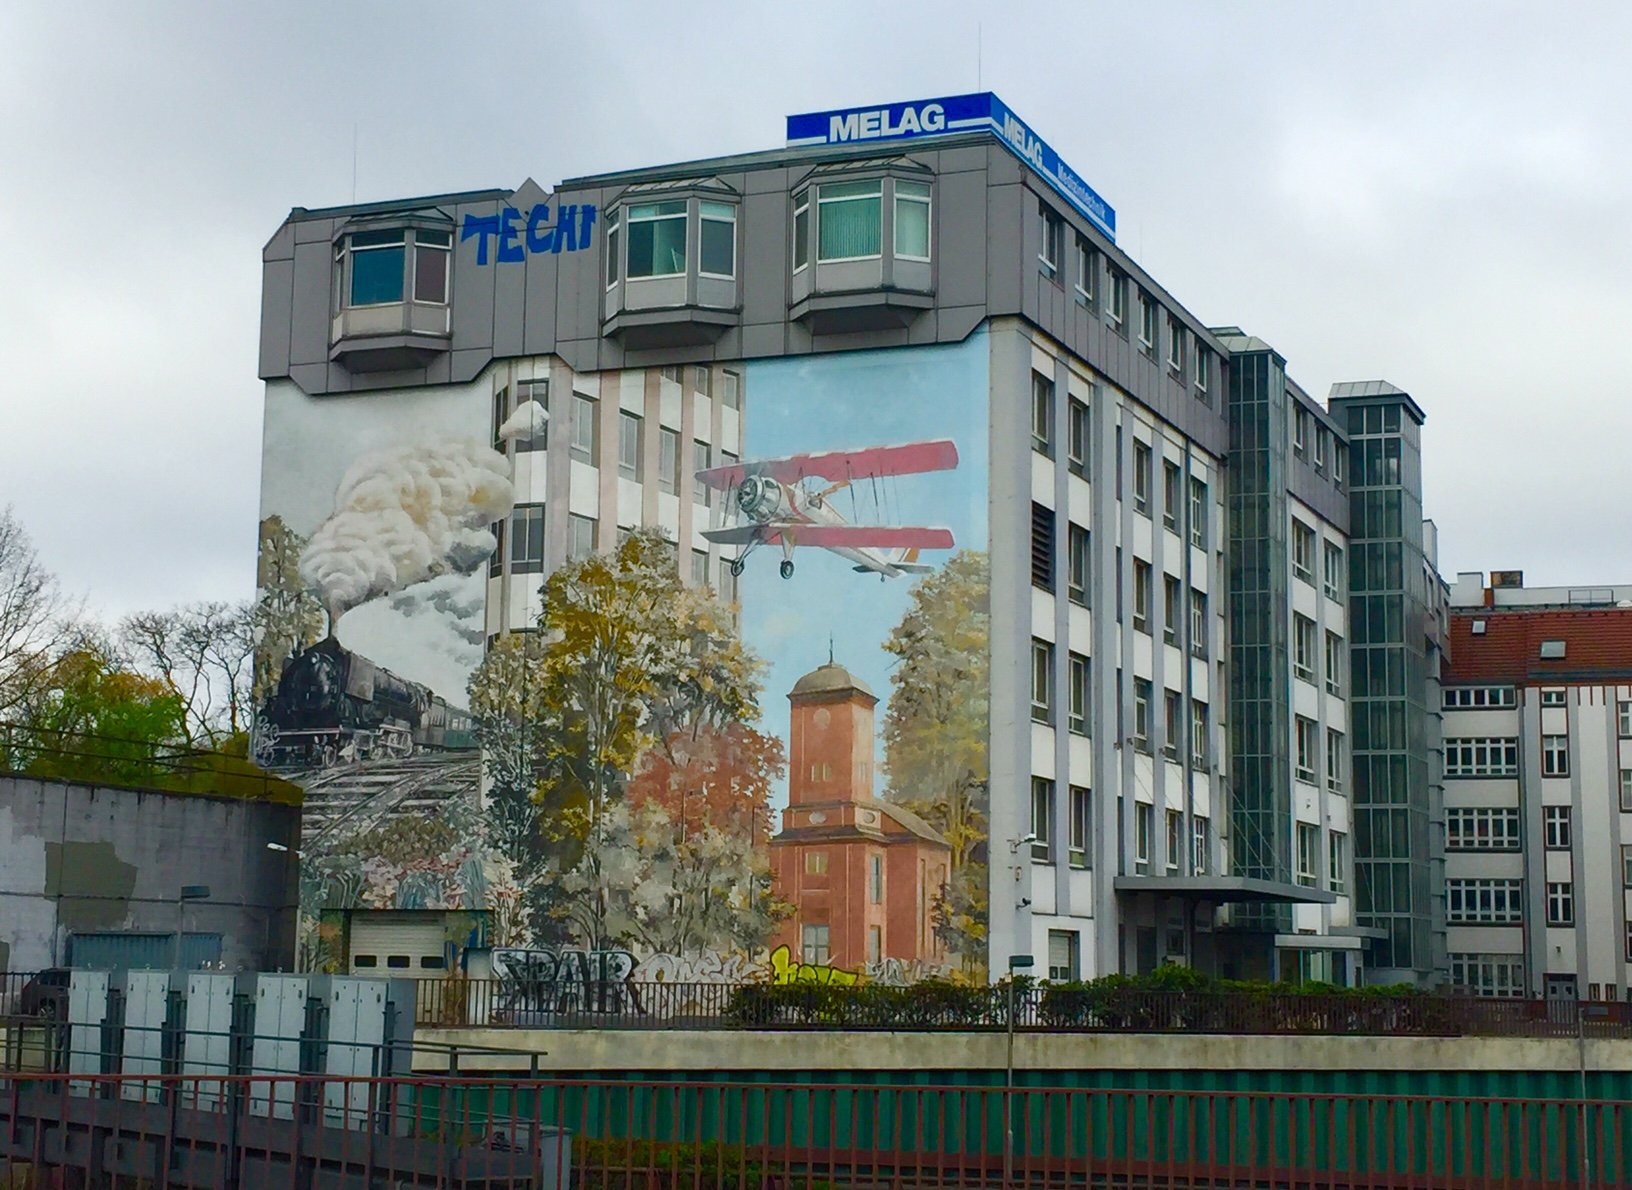 Murals on the side of apartment blocks everywhere